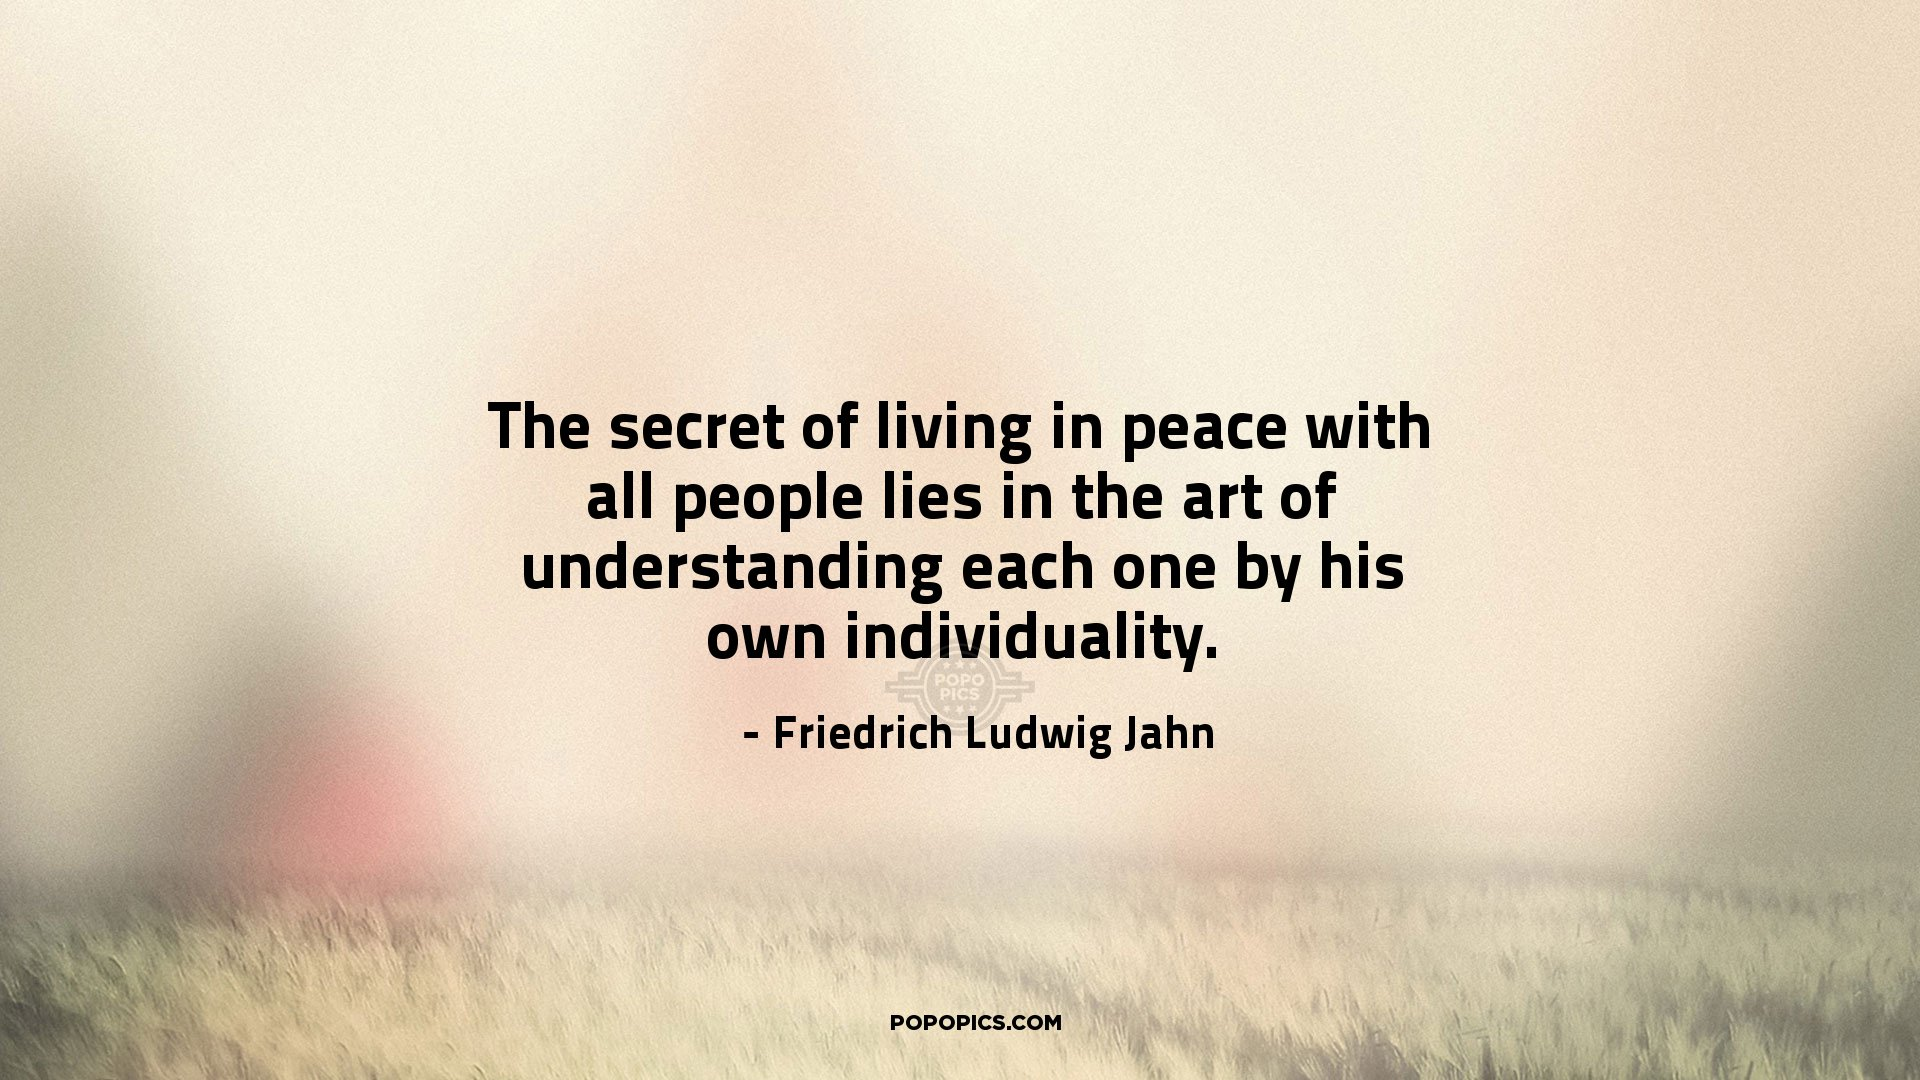 The Secret Of Living In Peace With All People Quotes By